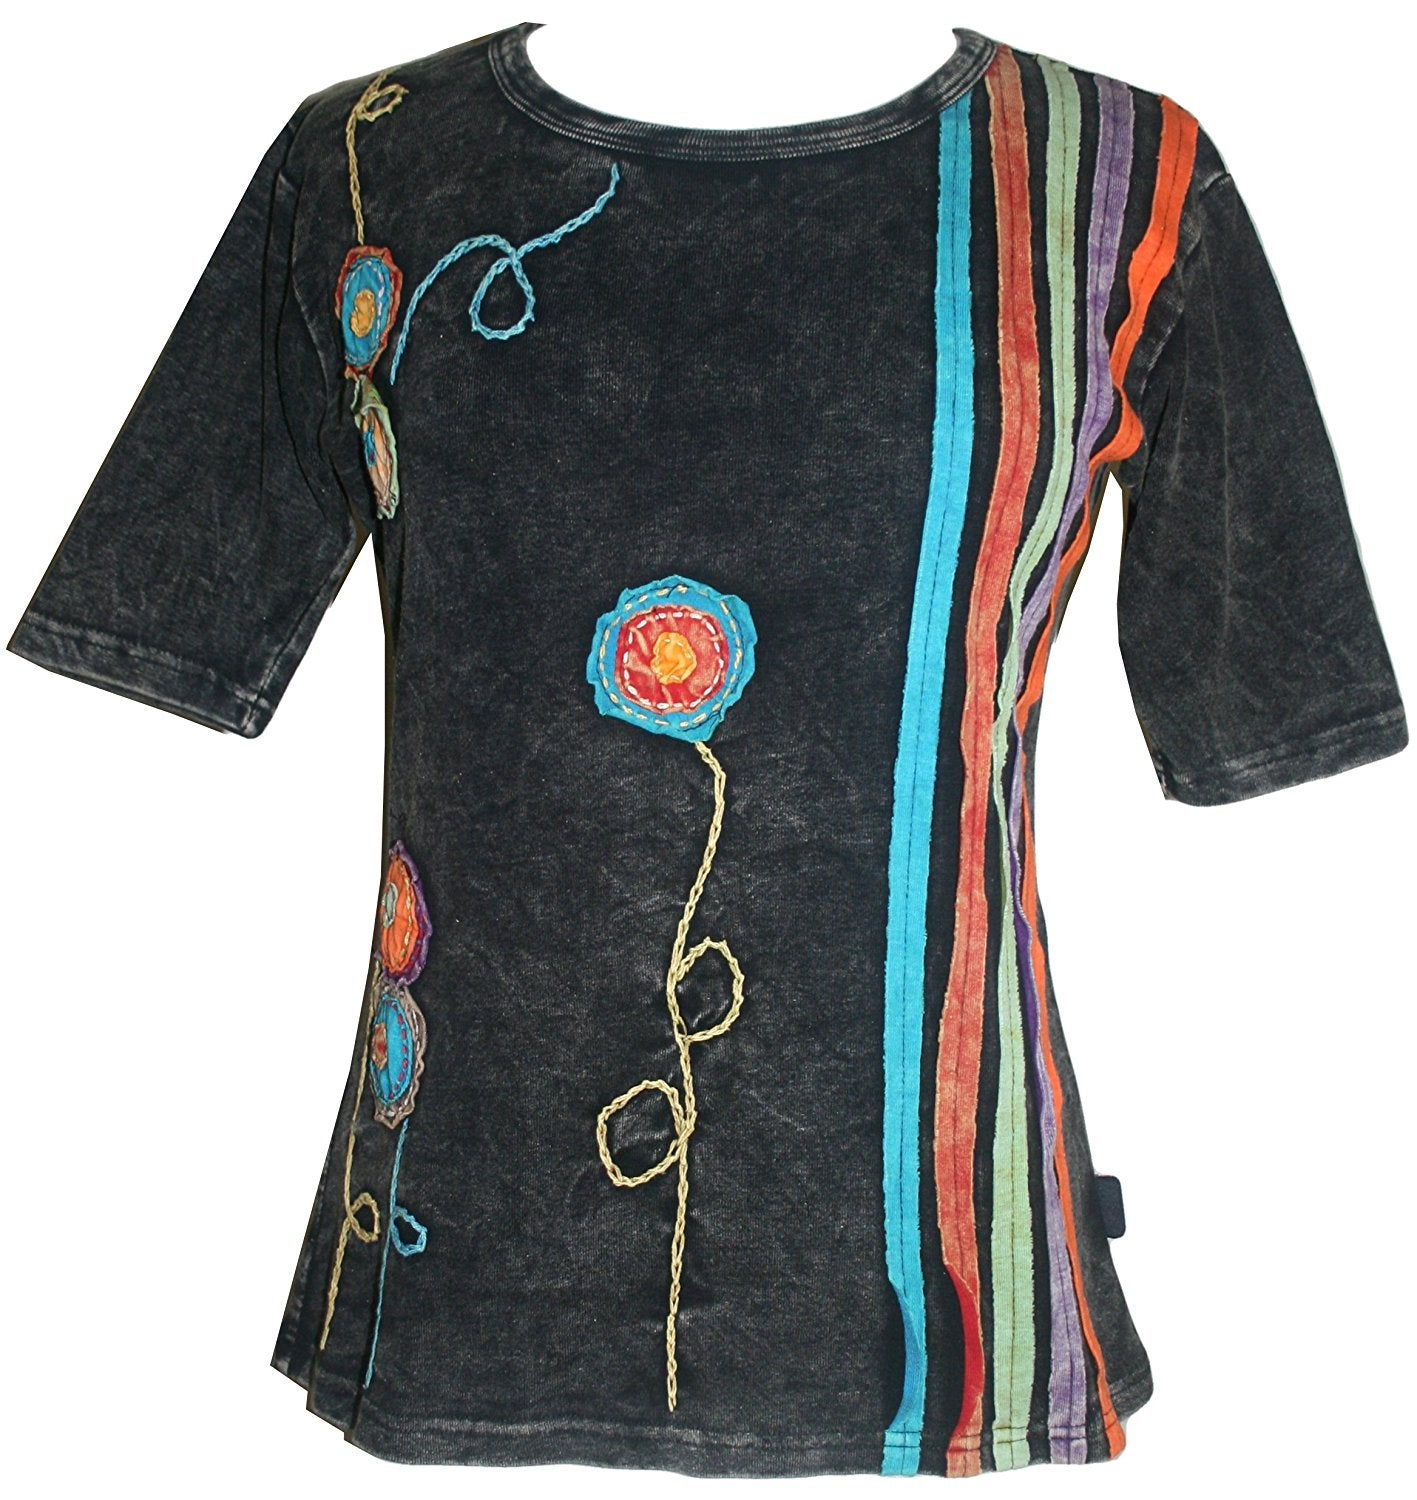 R 015 Agan Traders Knit Cotton stripe flower Boho Gypsy Top Blouse - Agan Traders, Black